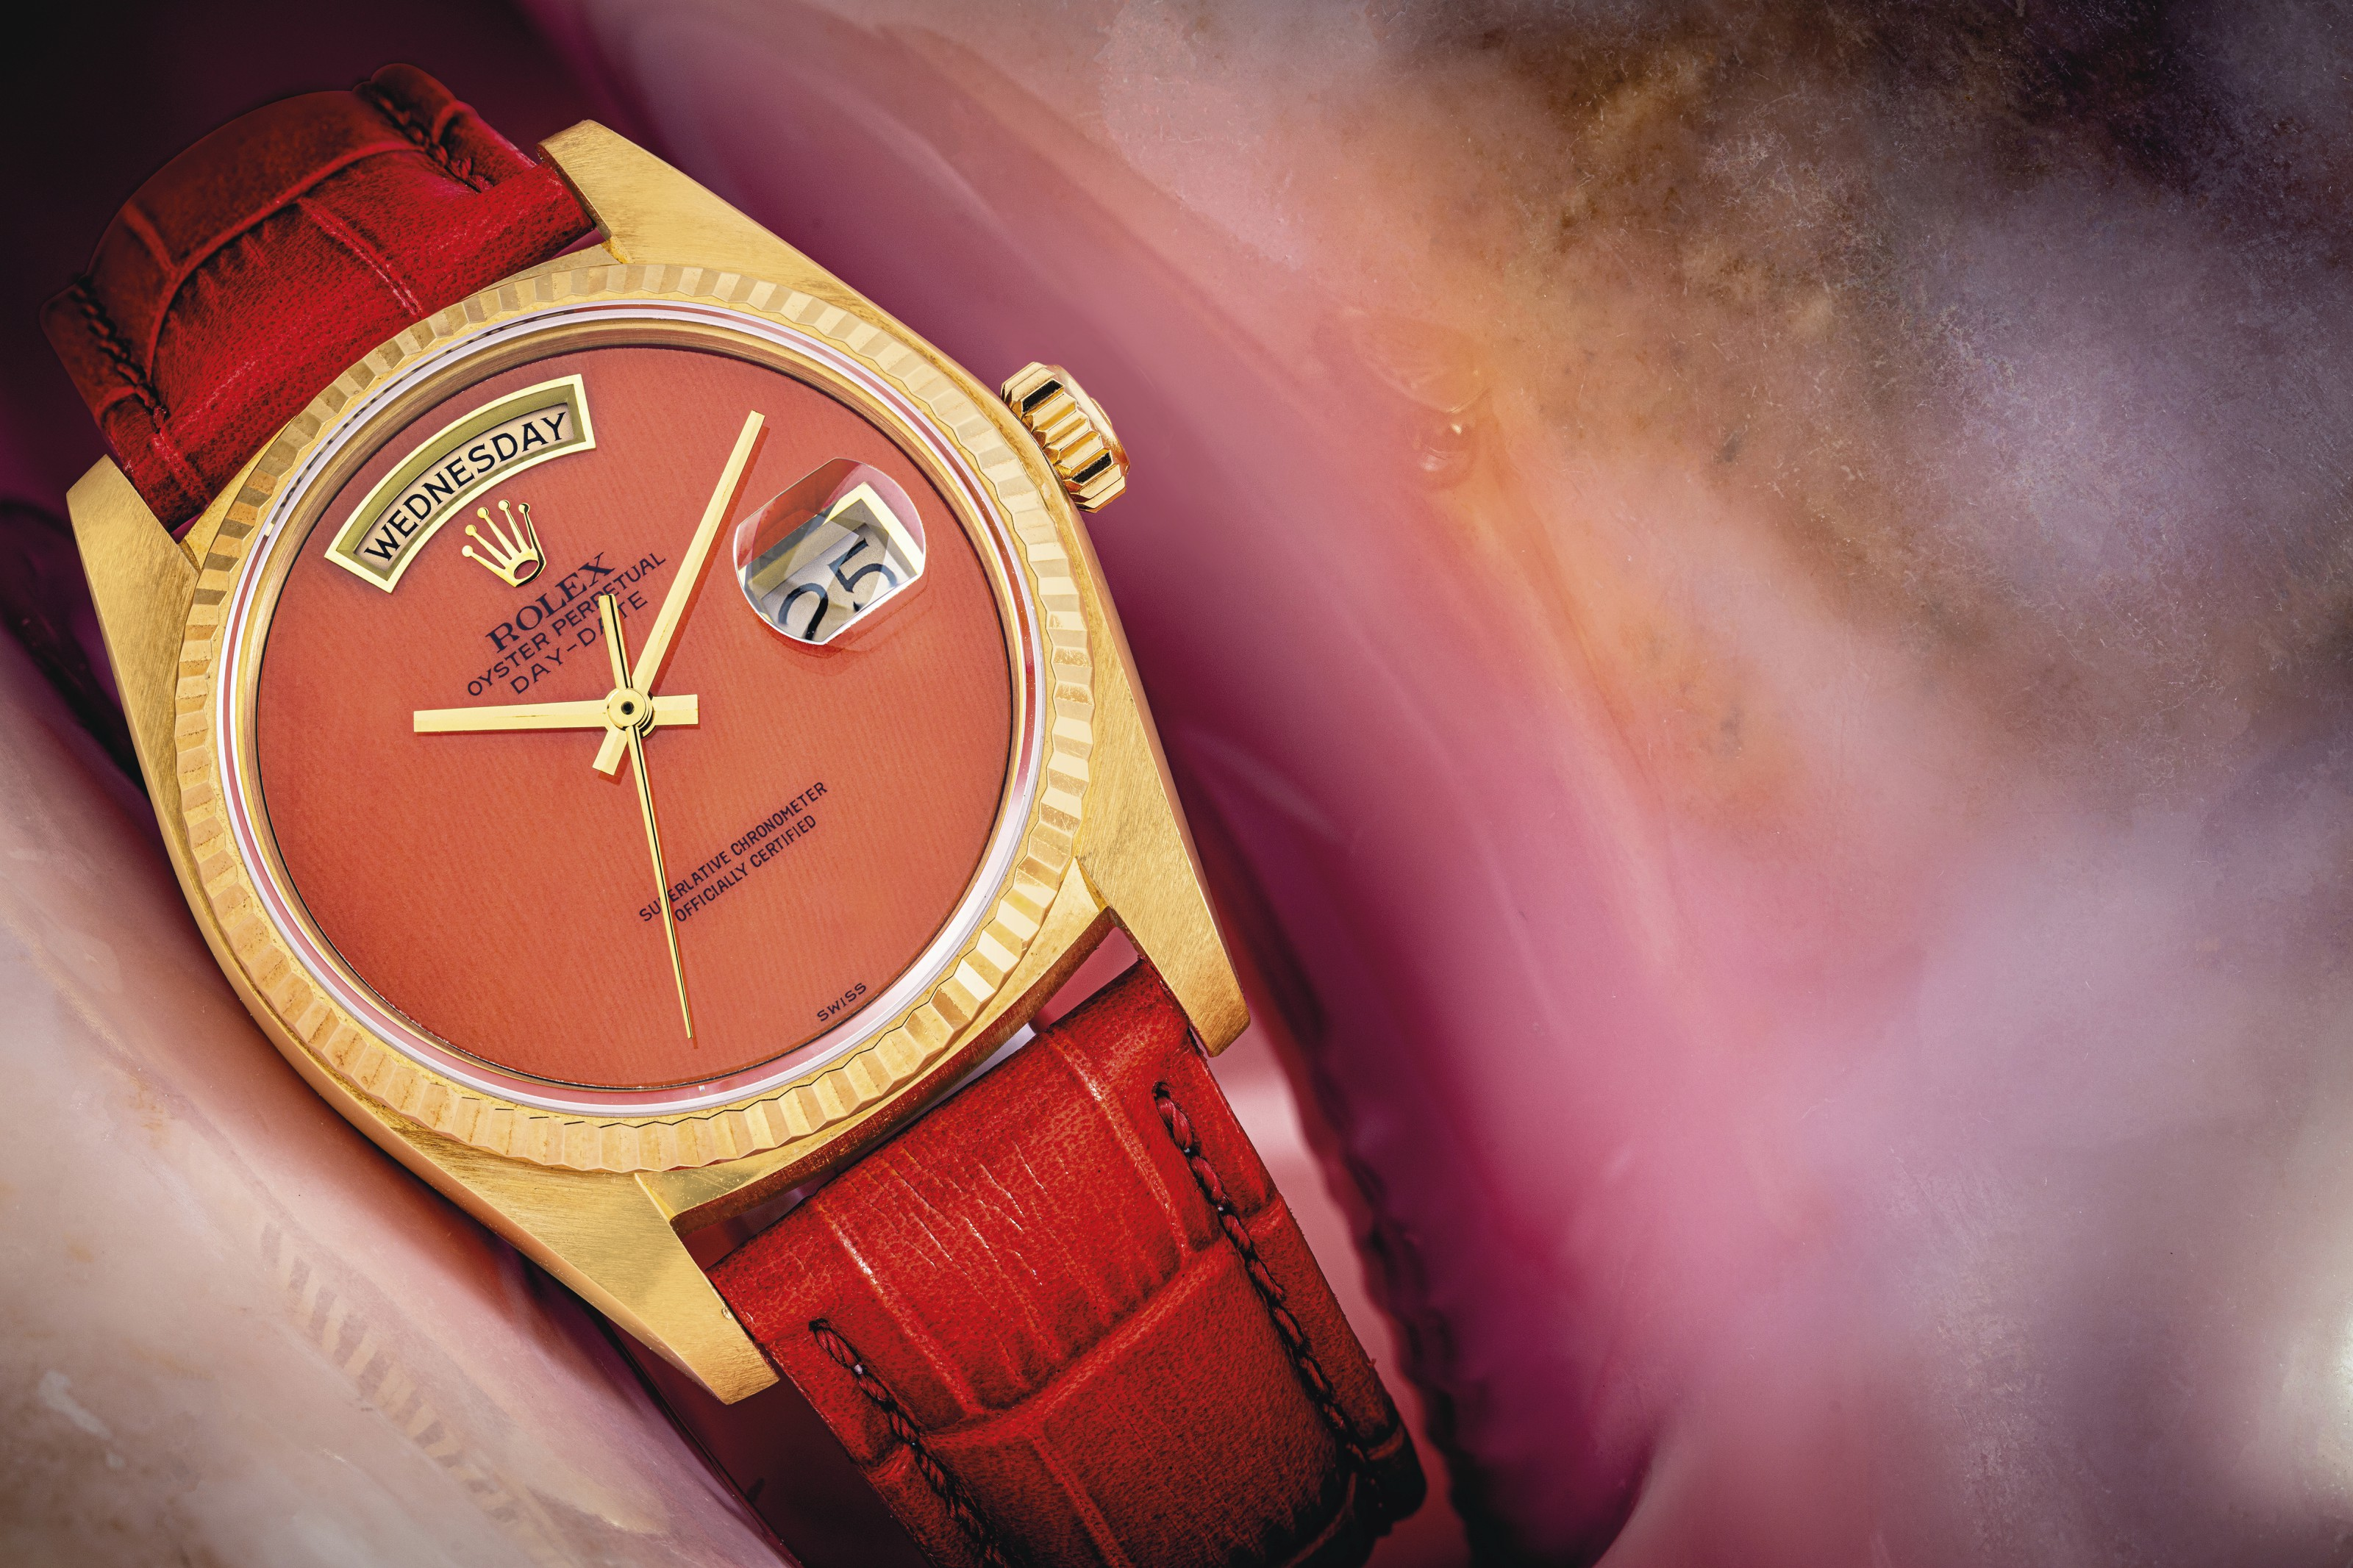 ROLEX. A VERY RARE 18K GOLD AUTOMATIC WRISTWATCH WITH SWEEP CENTRE SECONDS, DAY, DATE AND CORAL DIAL